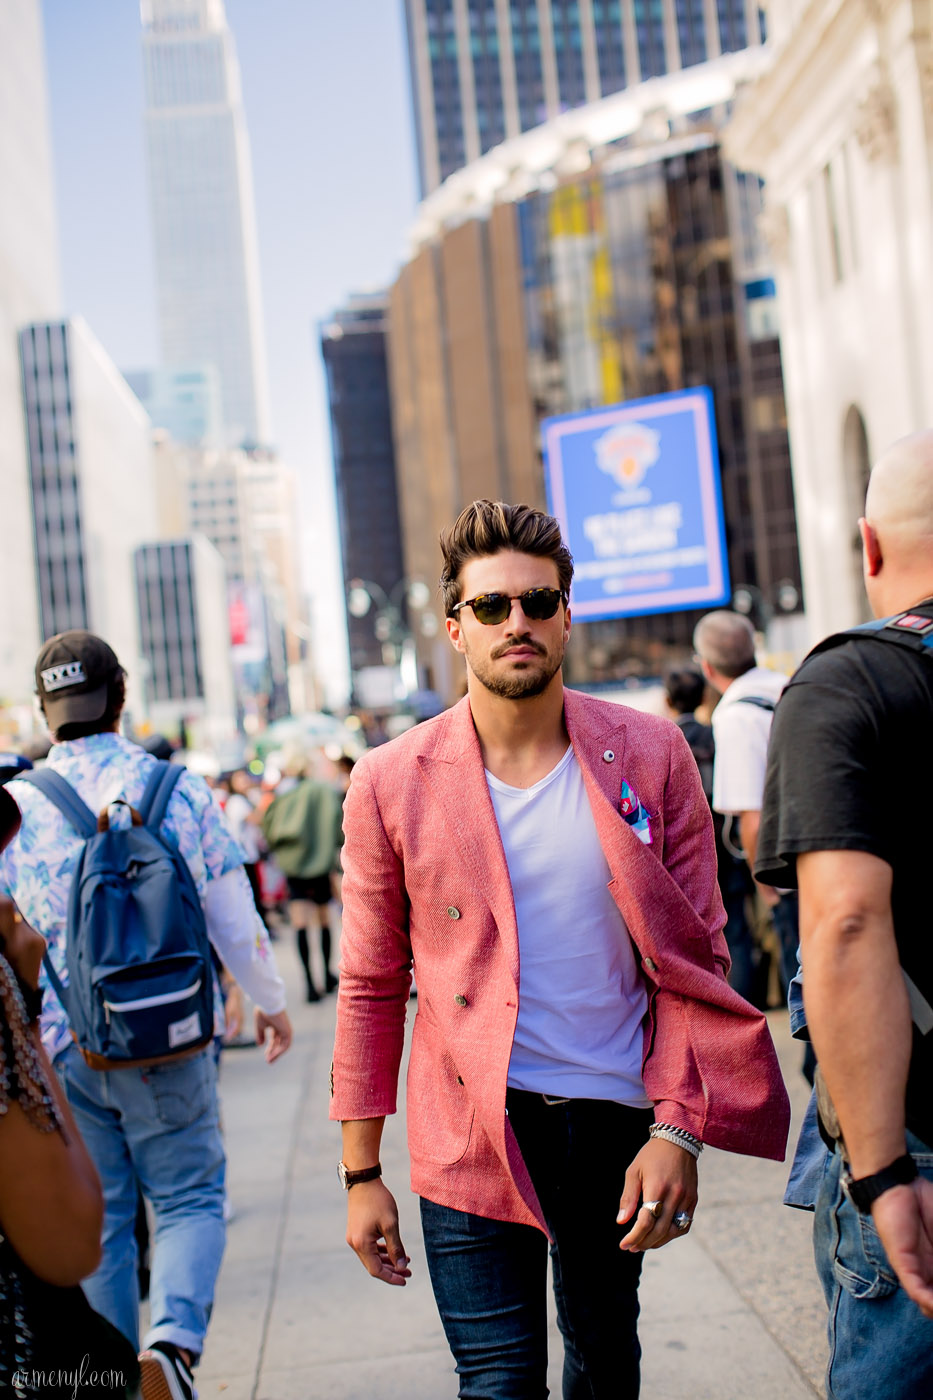 Mariano Di Vaio at NYFW 2015, Men's Street style, Jeremy Scott show photographed by street style photographer armenyl.com